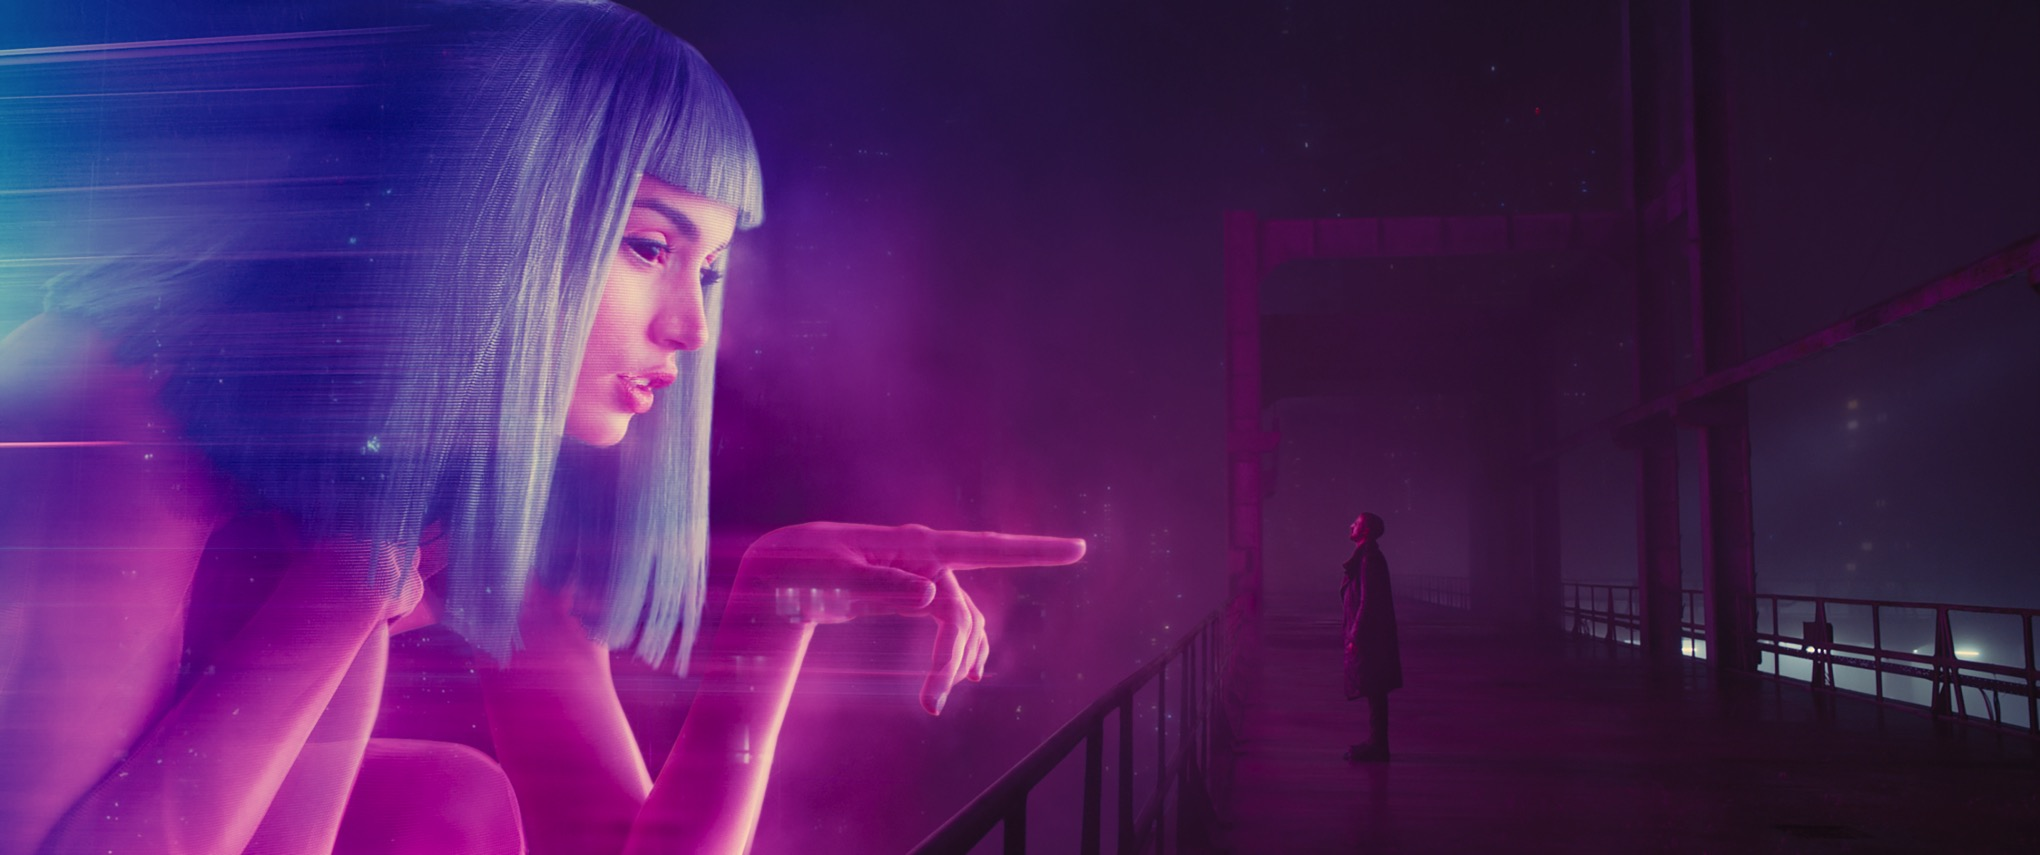 Blade Runner Review Spoilerfree Edition The Verge - The miniature set used for blade runner 2049 will change the way you see movies